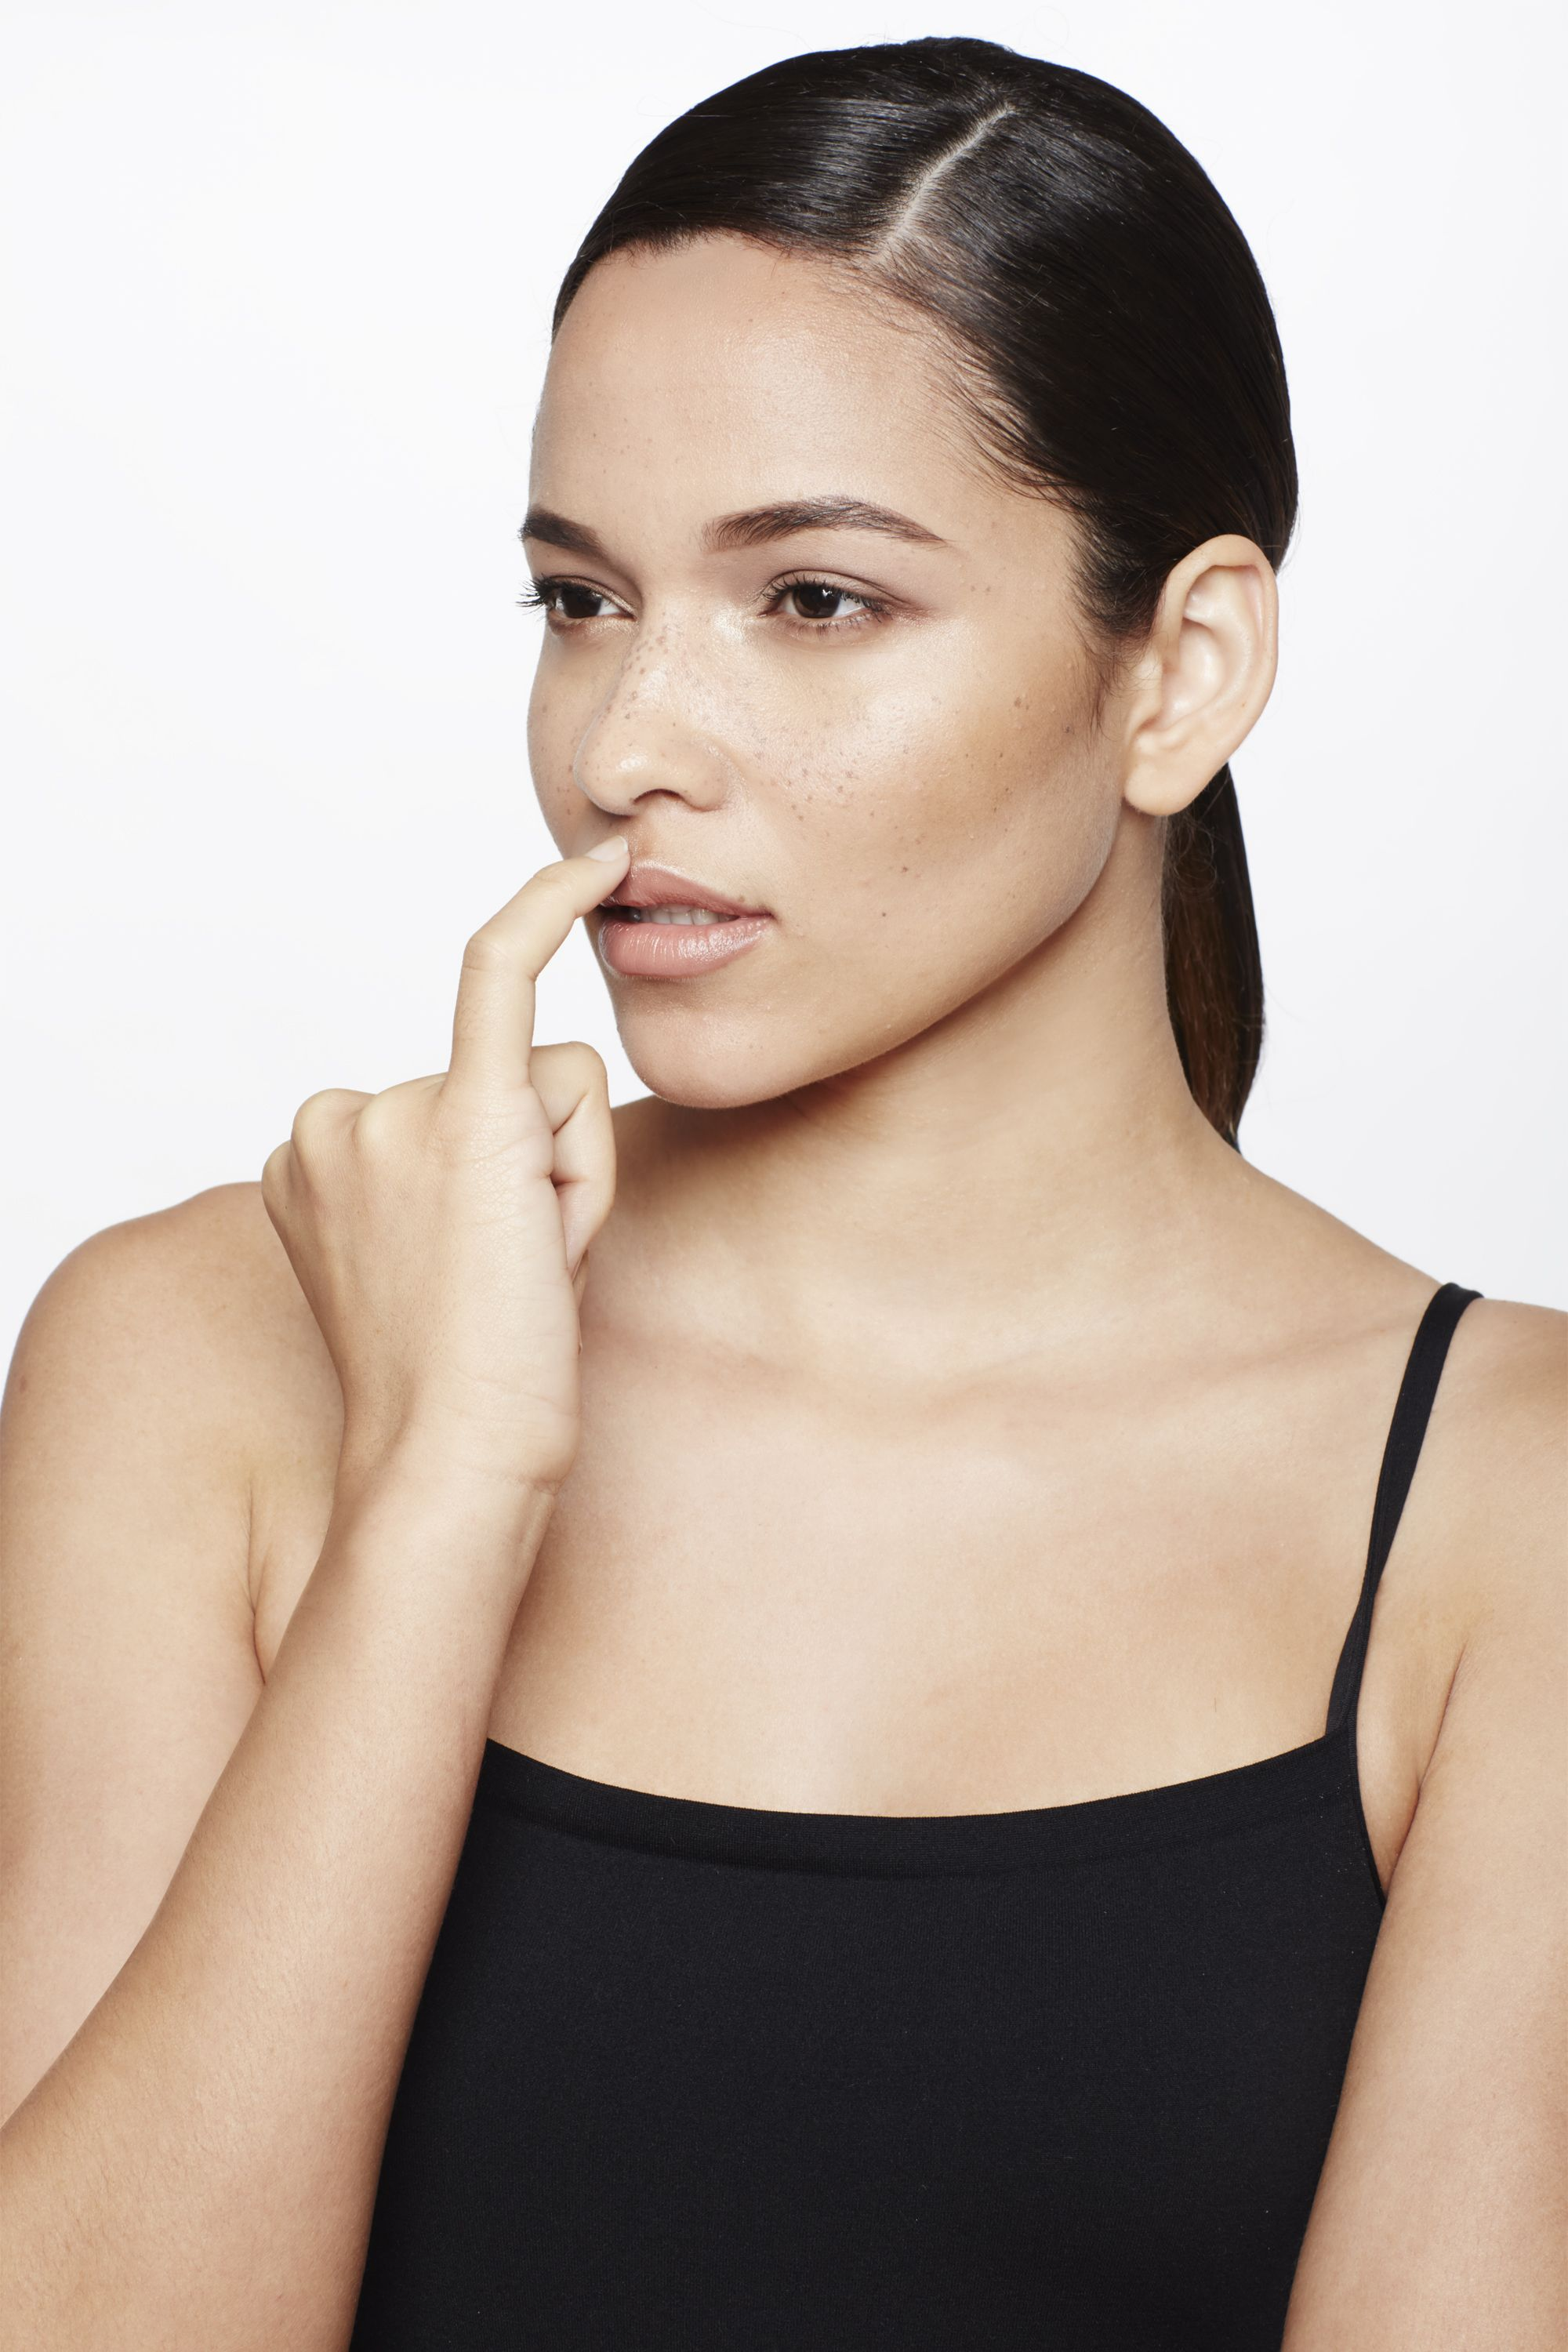 """<p>You don't need to resort to Kylie Jenner measures to make your lips seem fuller. With your pinky, dab a tiny bit of liquid highlighter, such as <a href=""""http://www.lorealparisusa.com/en/products/makeup/face/primer/true-match-lumi-liquid-glow-illuminator.aspx"""" target=""""_blank"""">L'Oréal Paris True Match Lumi Liquid Glow Illuminator</a>, just above your cupid's bow. """"The reflection of light creates an instant pouty effect,"""" says Jose.</p>"""